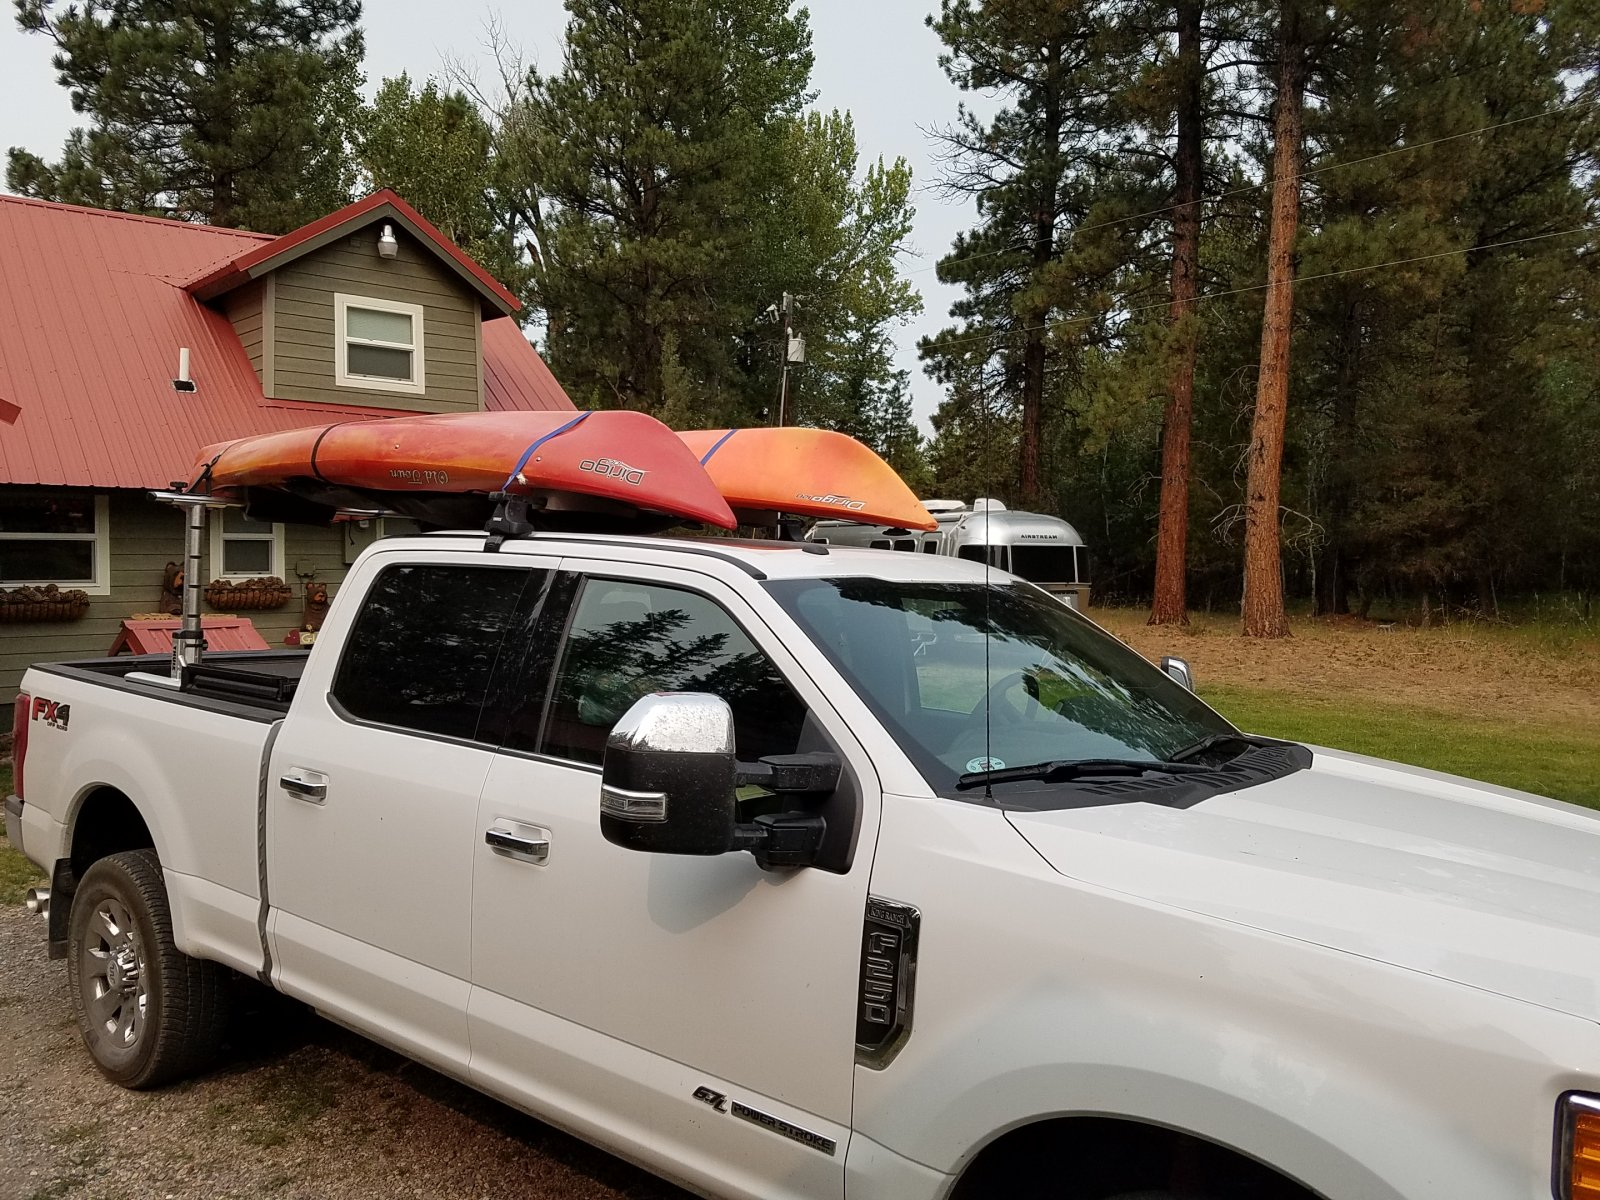 Click image for larger version  Name:F250 with kayaks front view.jpg Views:47 Size:451.5 KB ID:294001